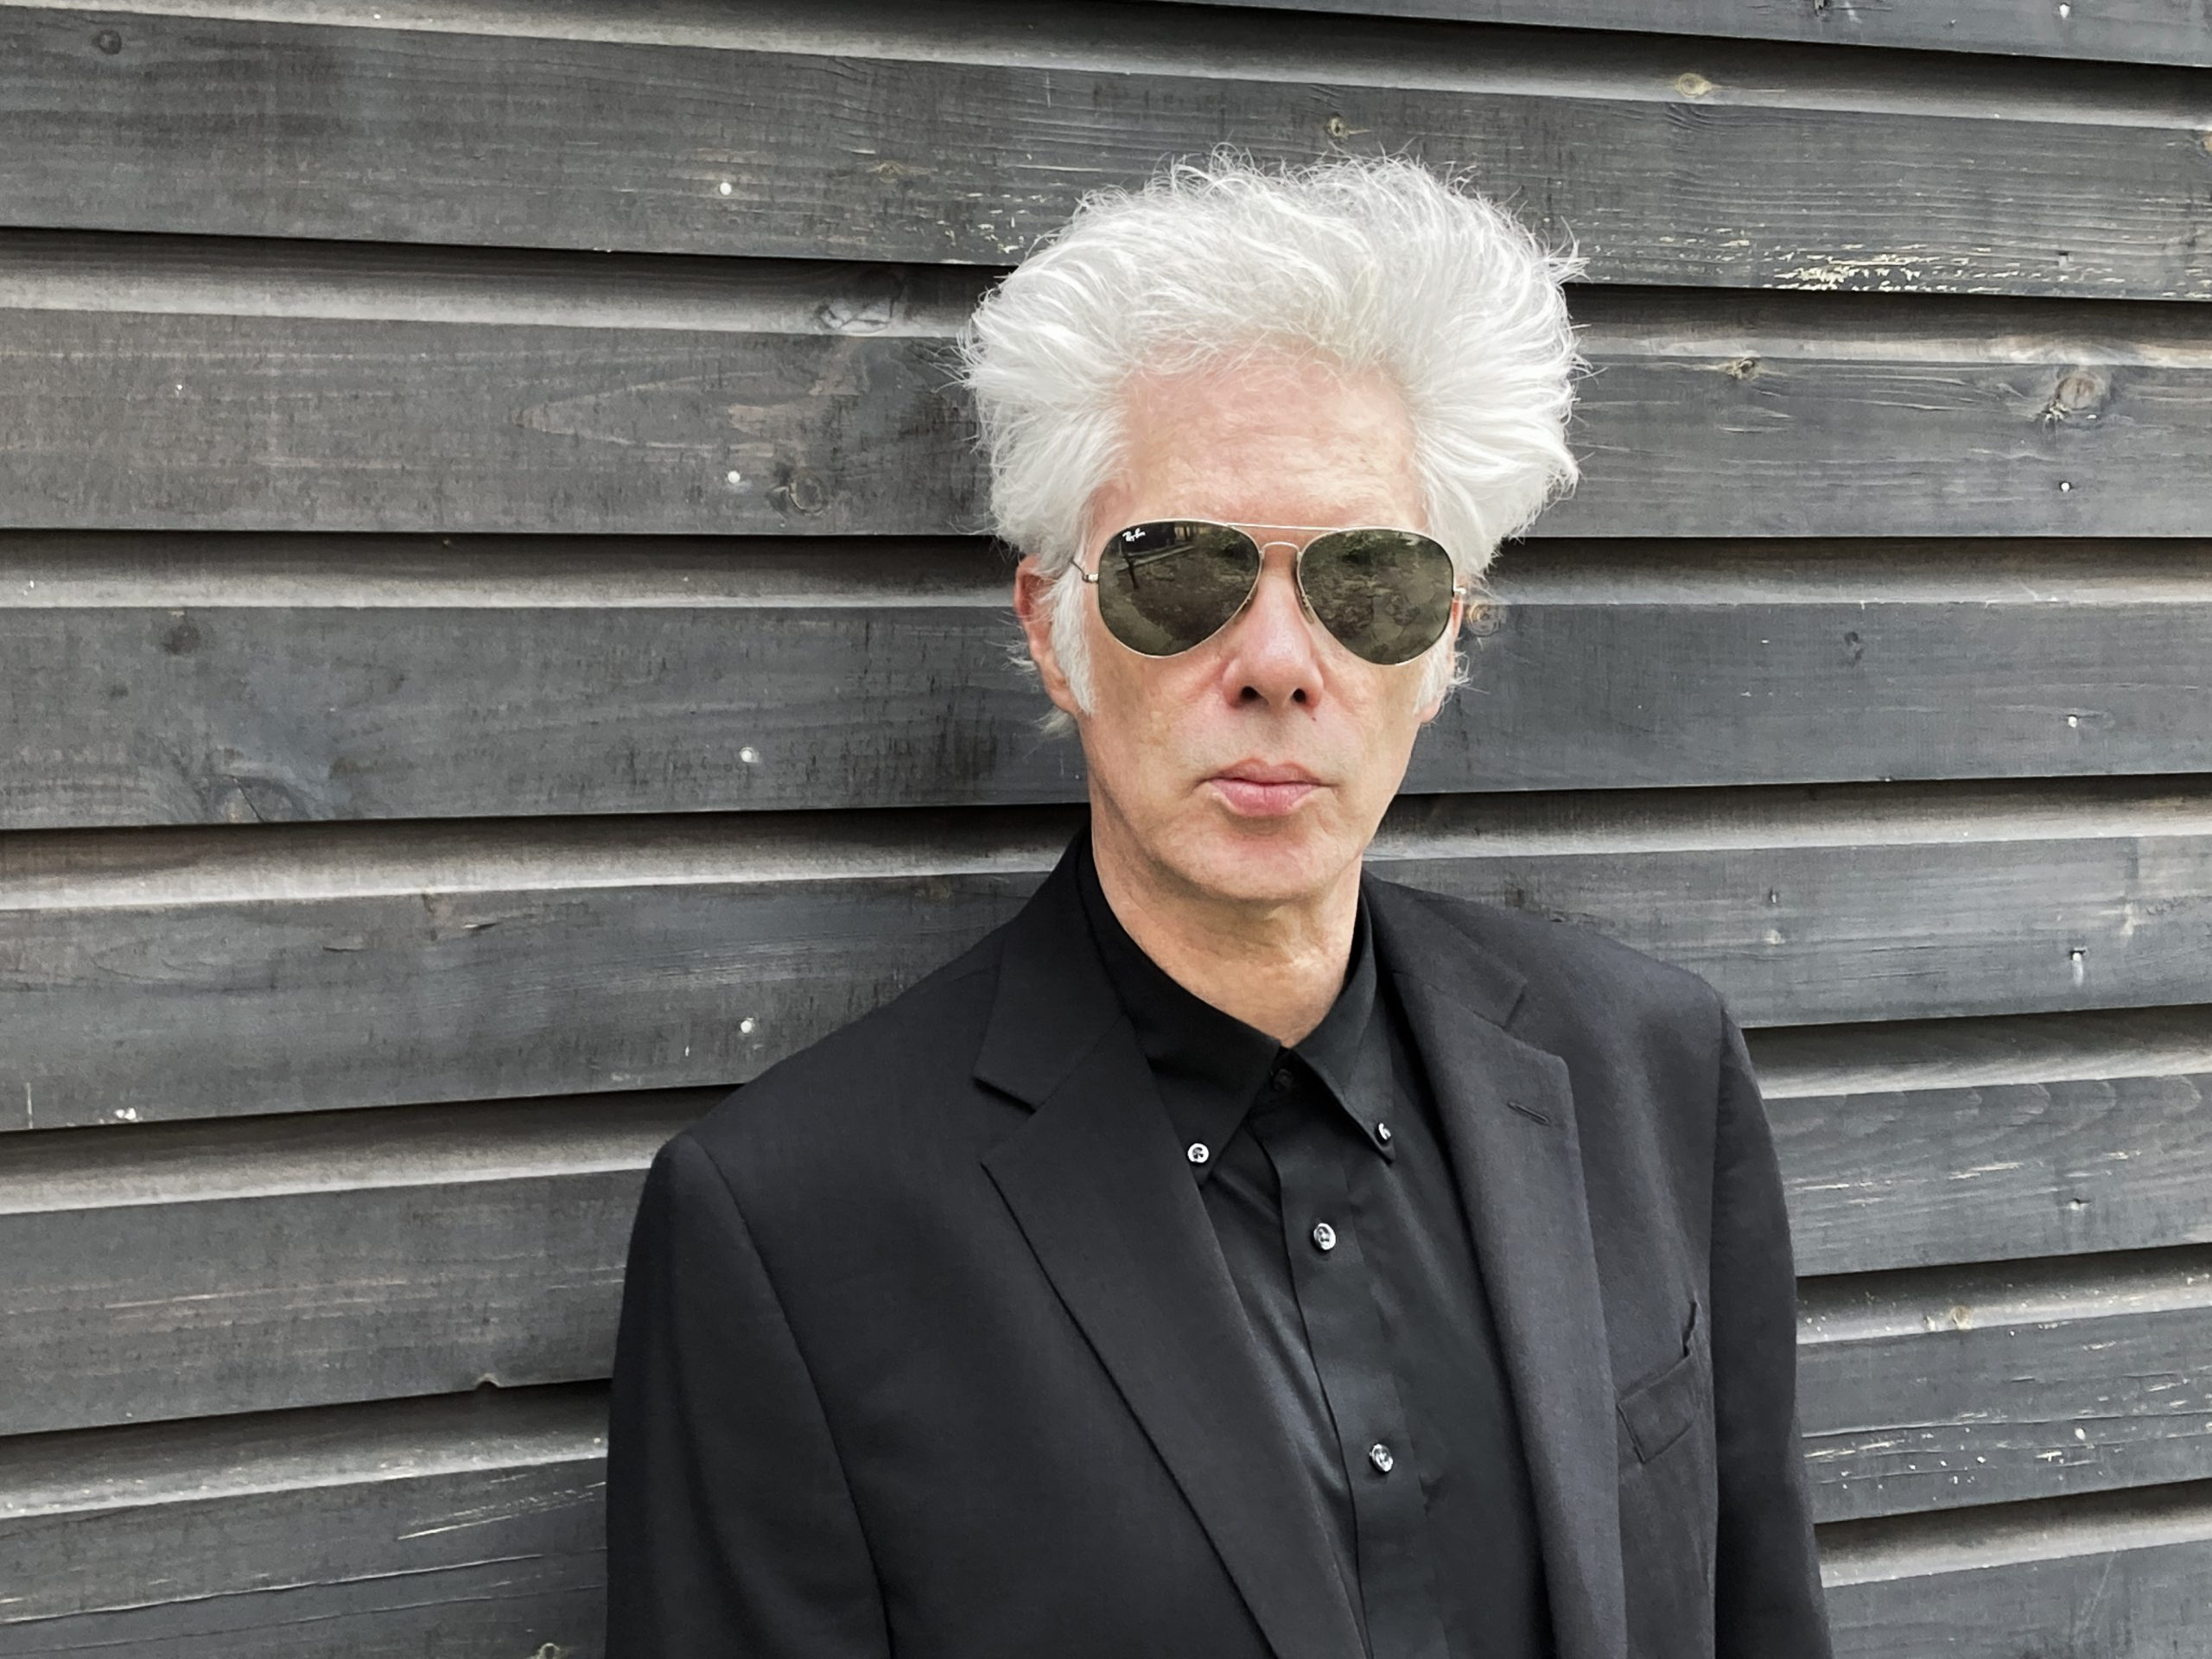 For Two Decades, Filmmaker Jim Jarmusch Has Quietly Been Making Quirky, Creepy Collage Art. Here's What They Look Like | Artnet News